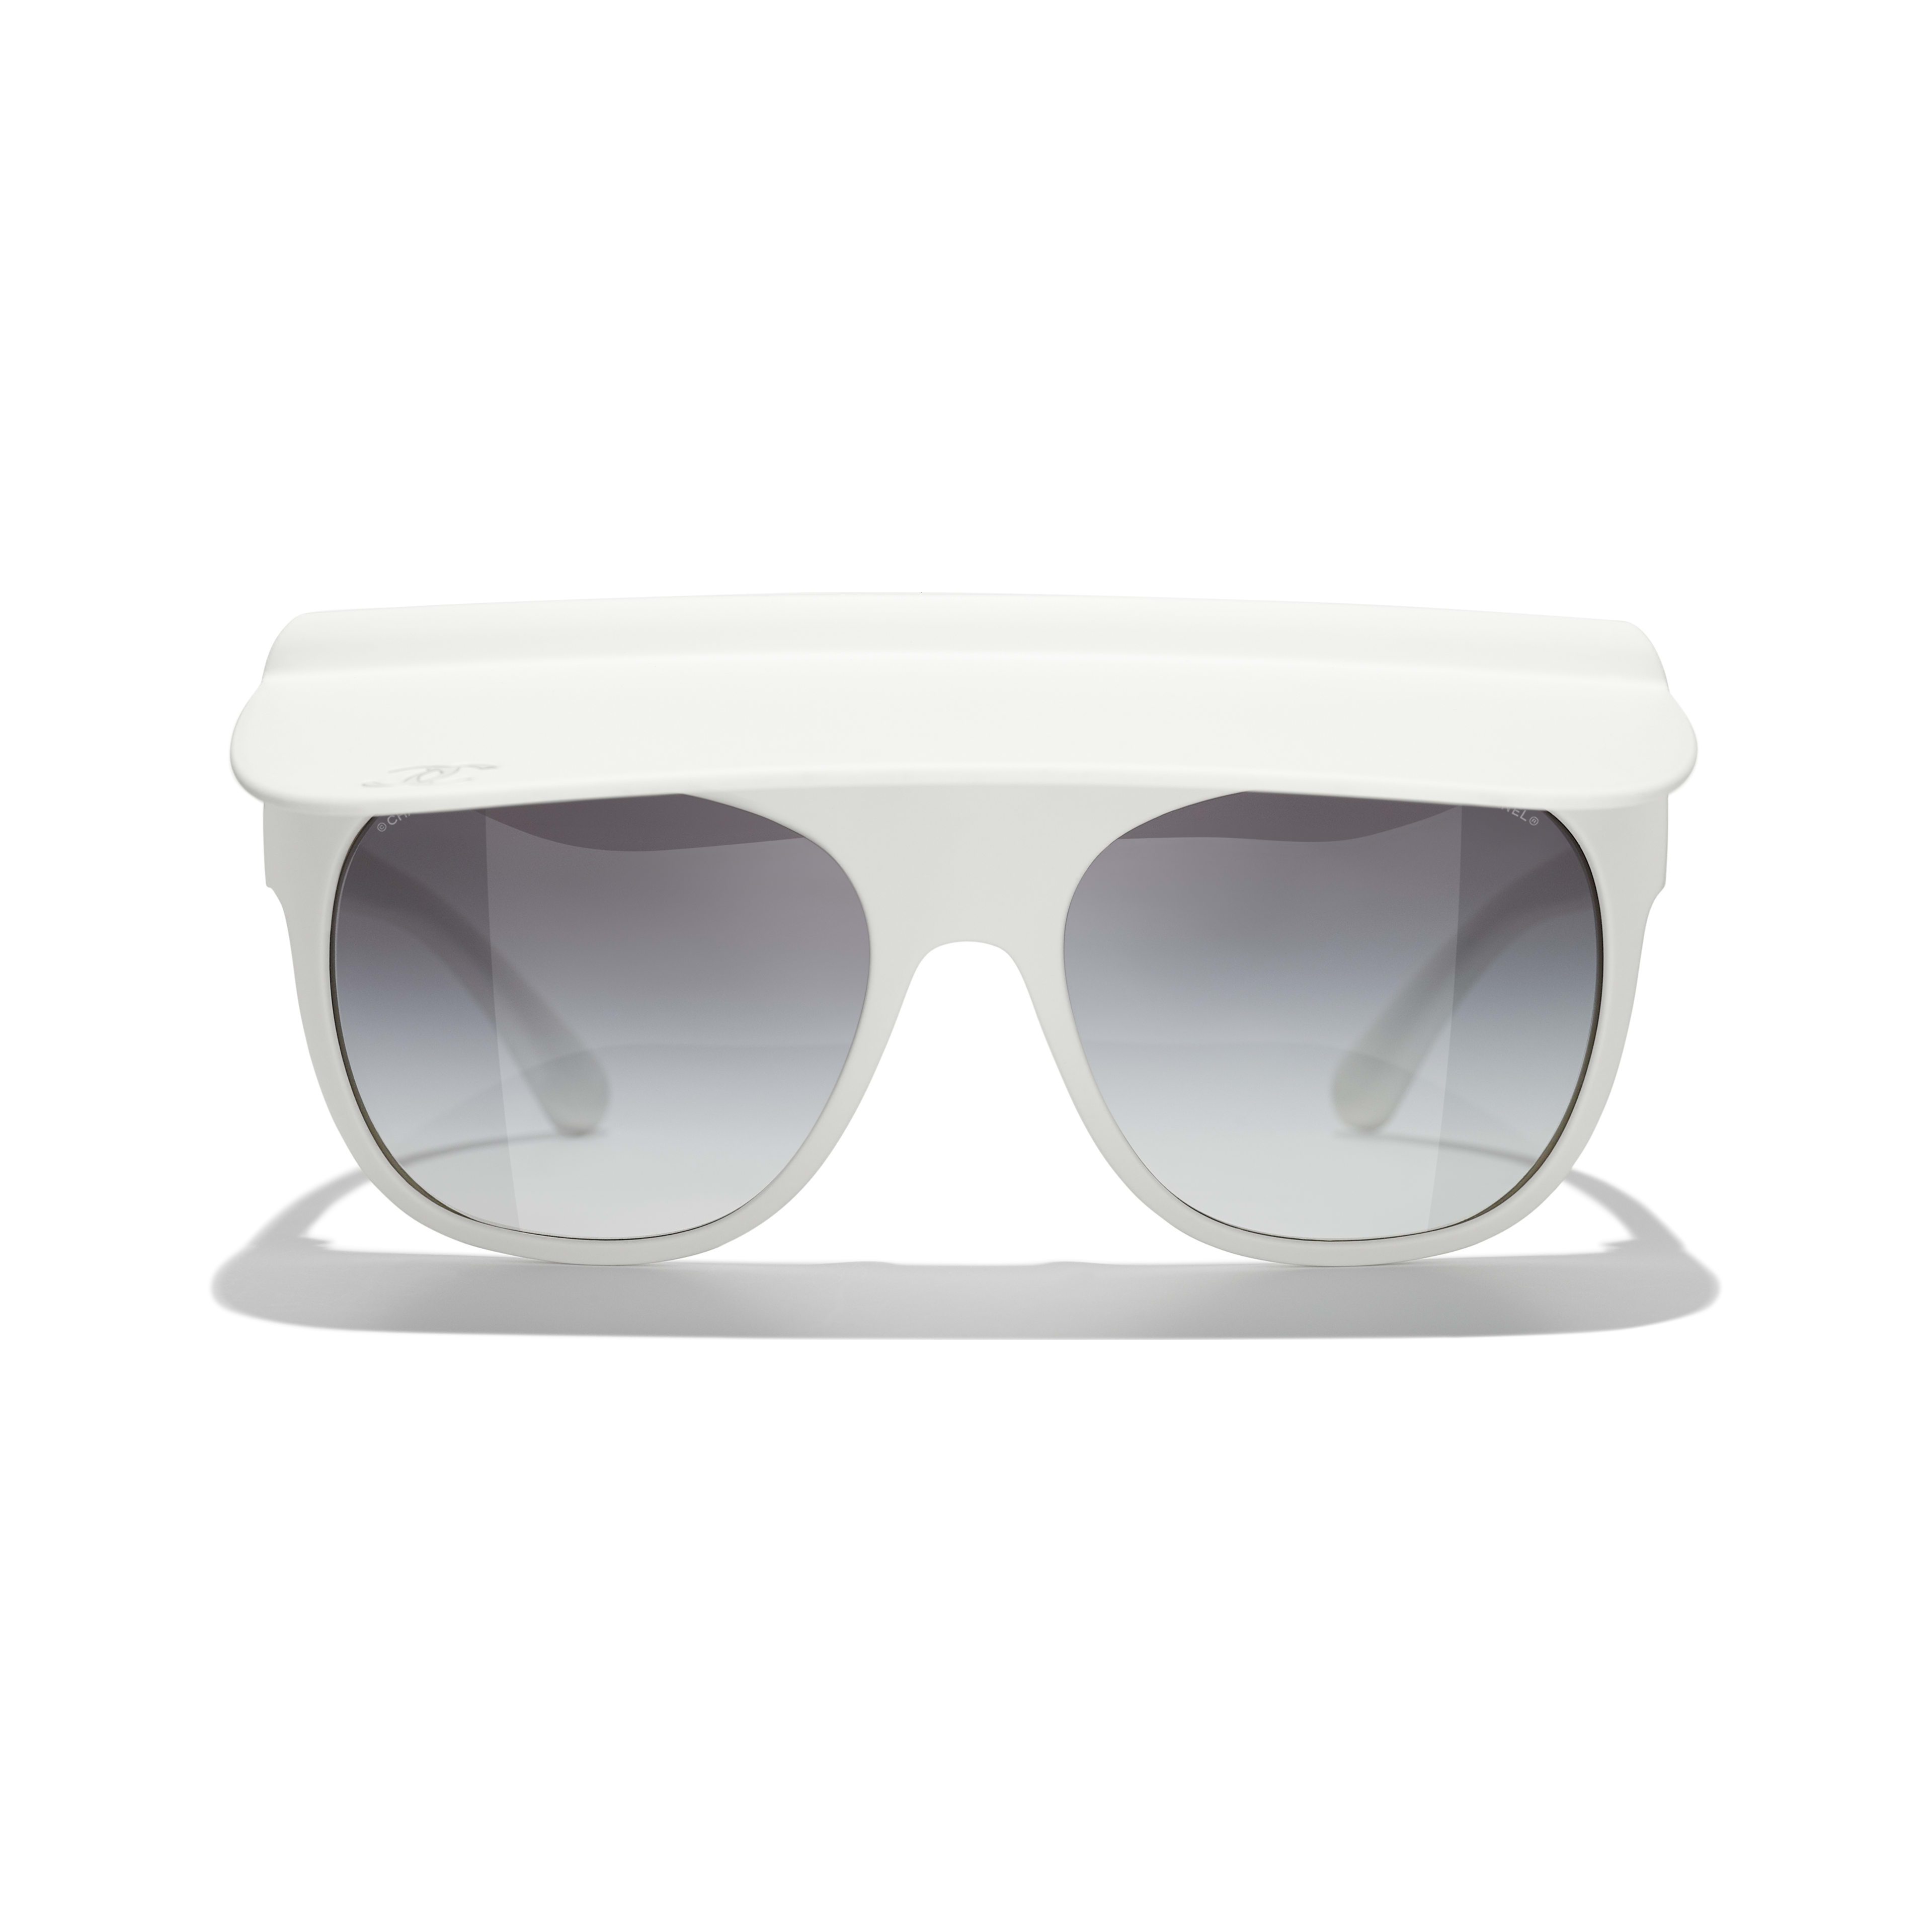 Visor Sunglasses - White - Nylon Fibre - CHANEL - Alternative view - see standard sized version